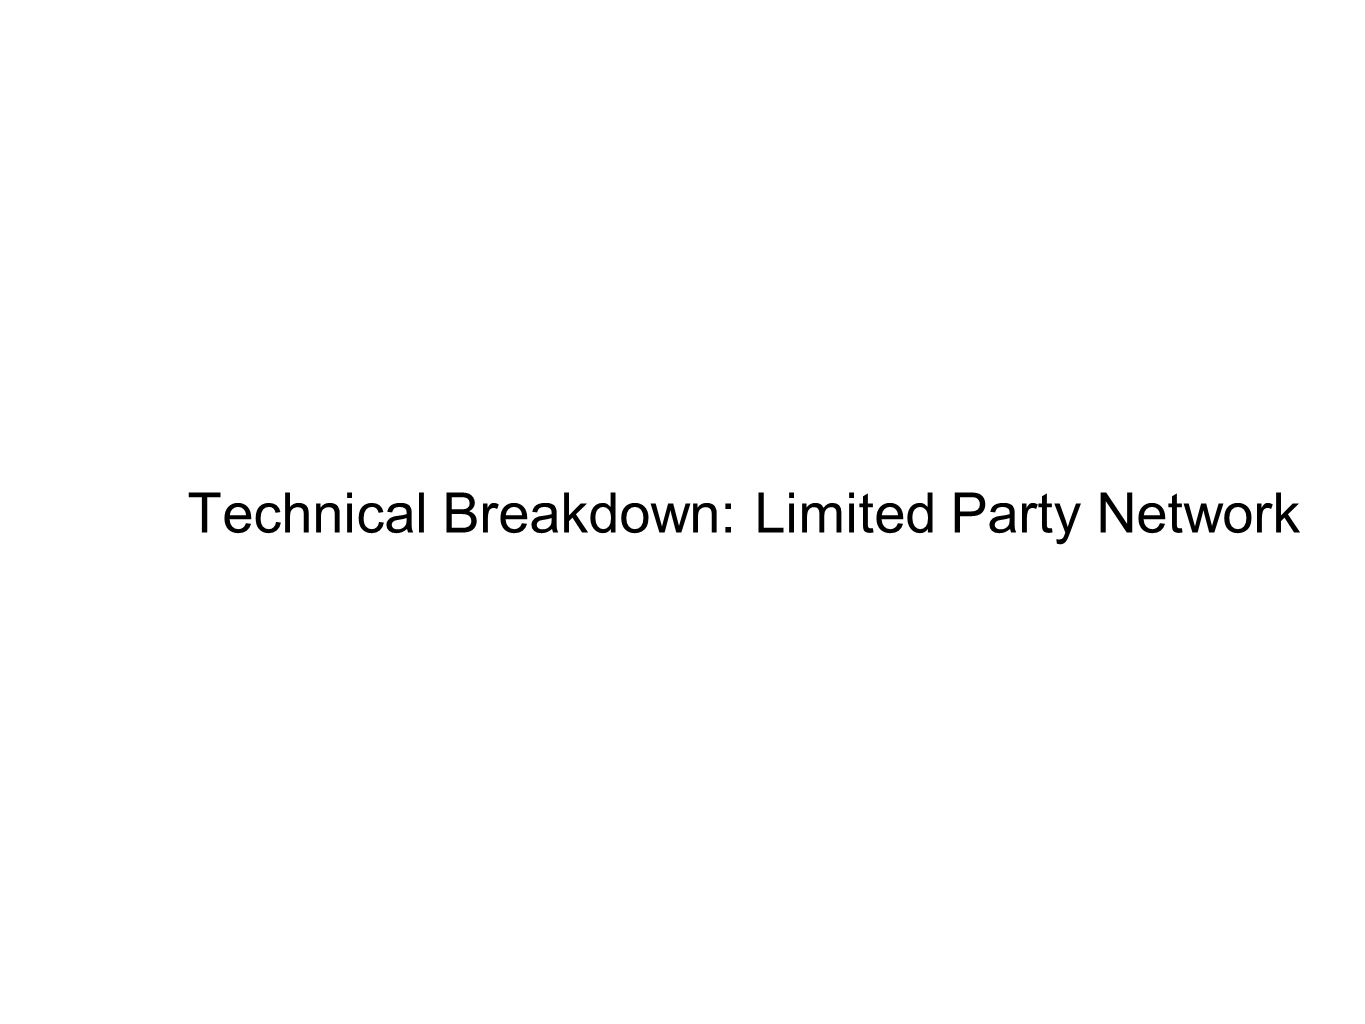 Technical Breakdown: Limited Party Network